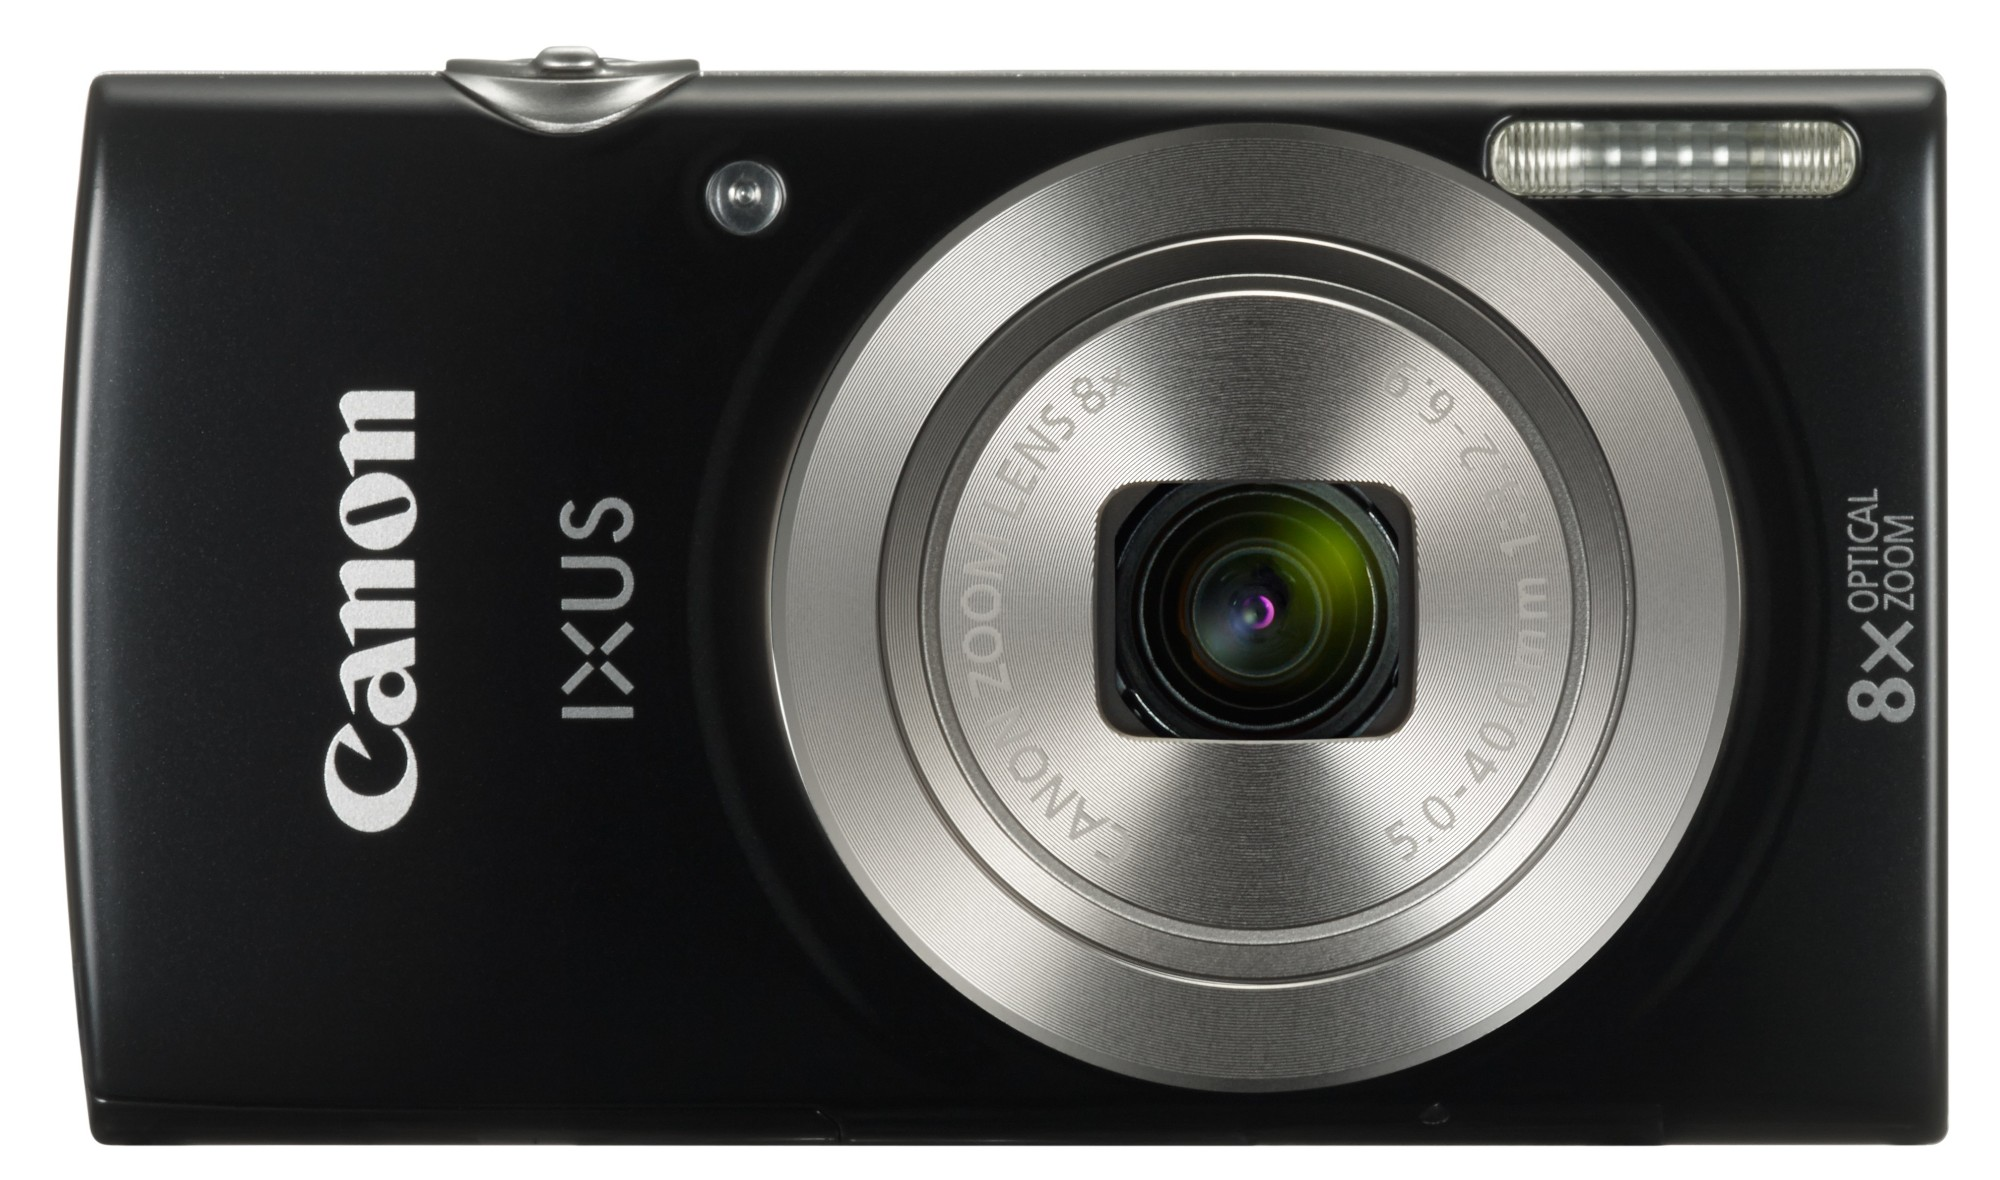 Compact  Digital Camera Ixus 185 20mpix 720p/25 Fps 8x Optical Zoom Black